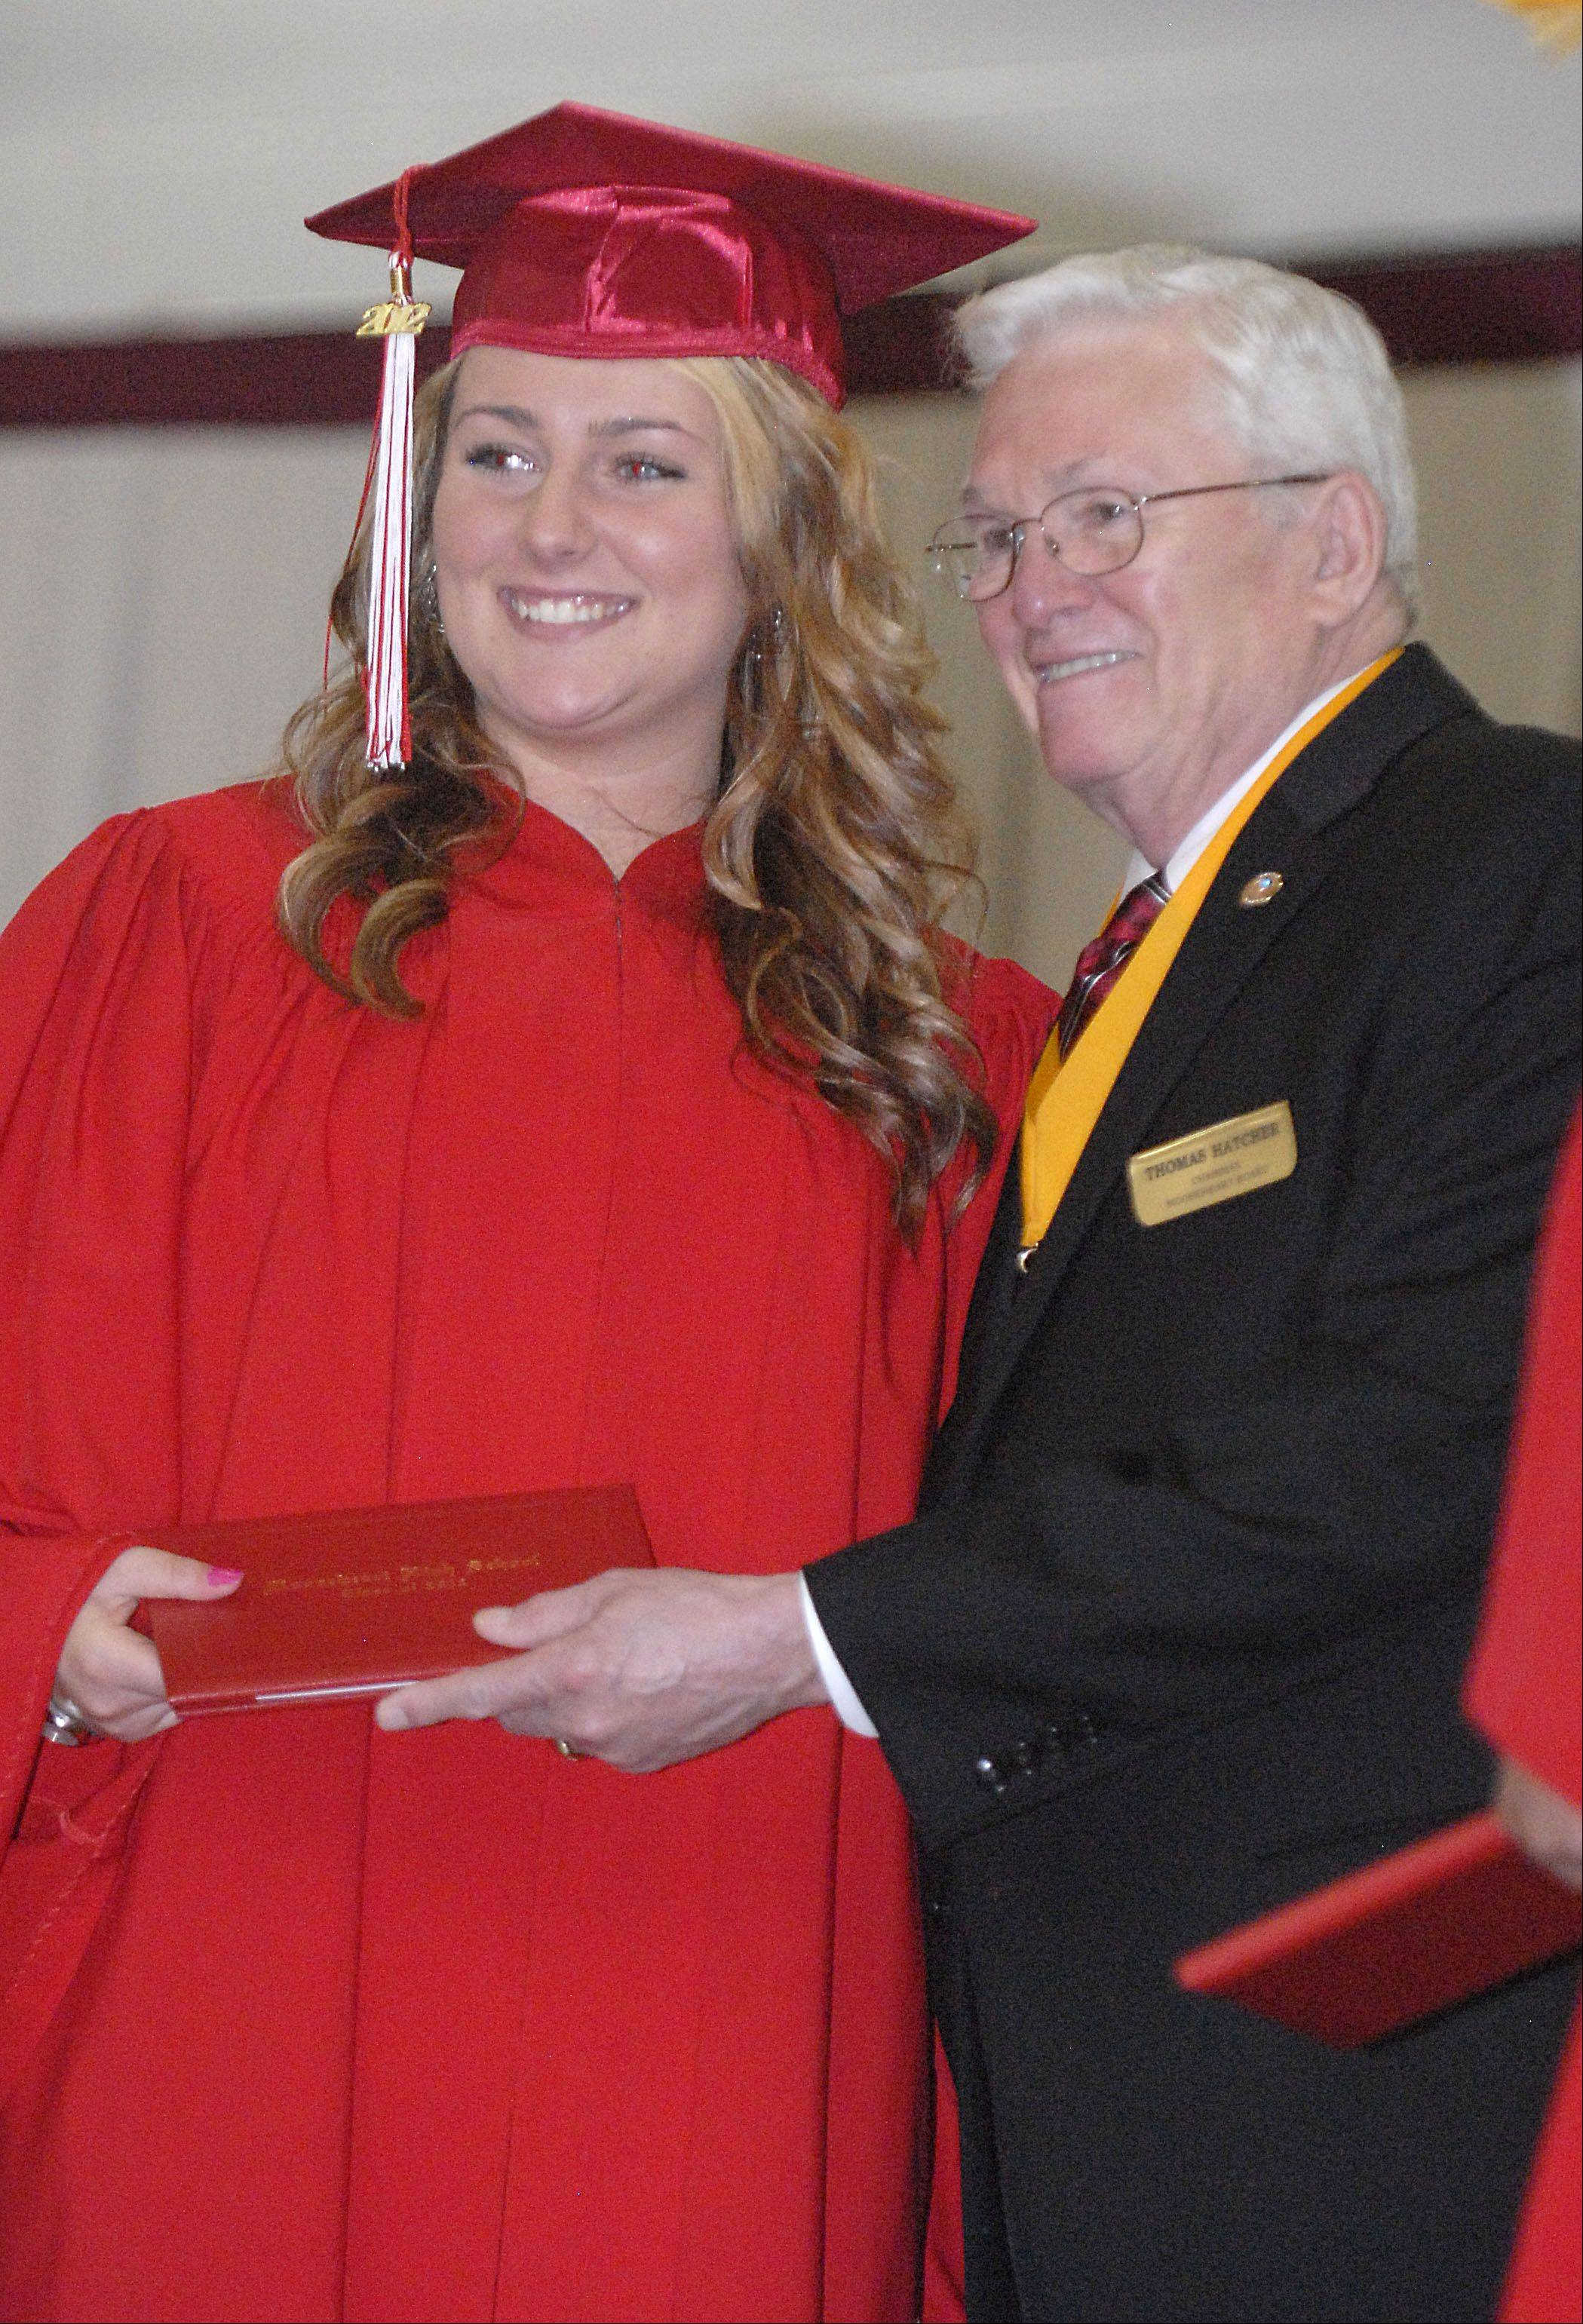 Images from the Mooseheart High School graduation ceremony Saturday, June 2, 2012.